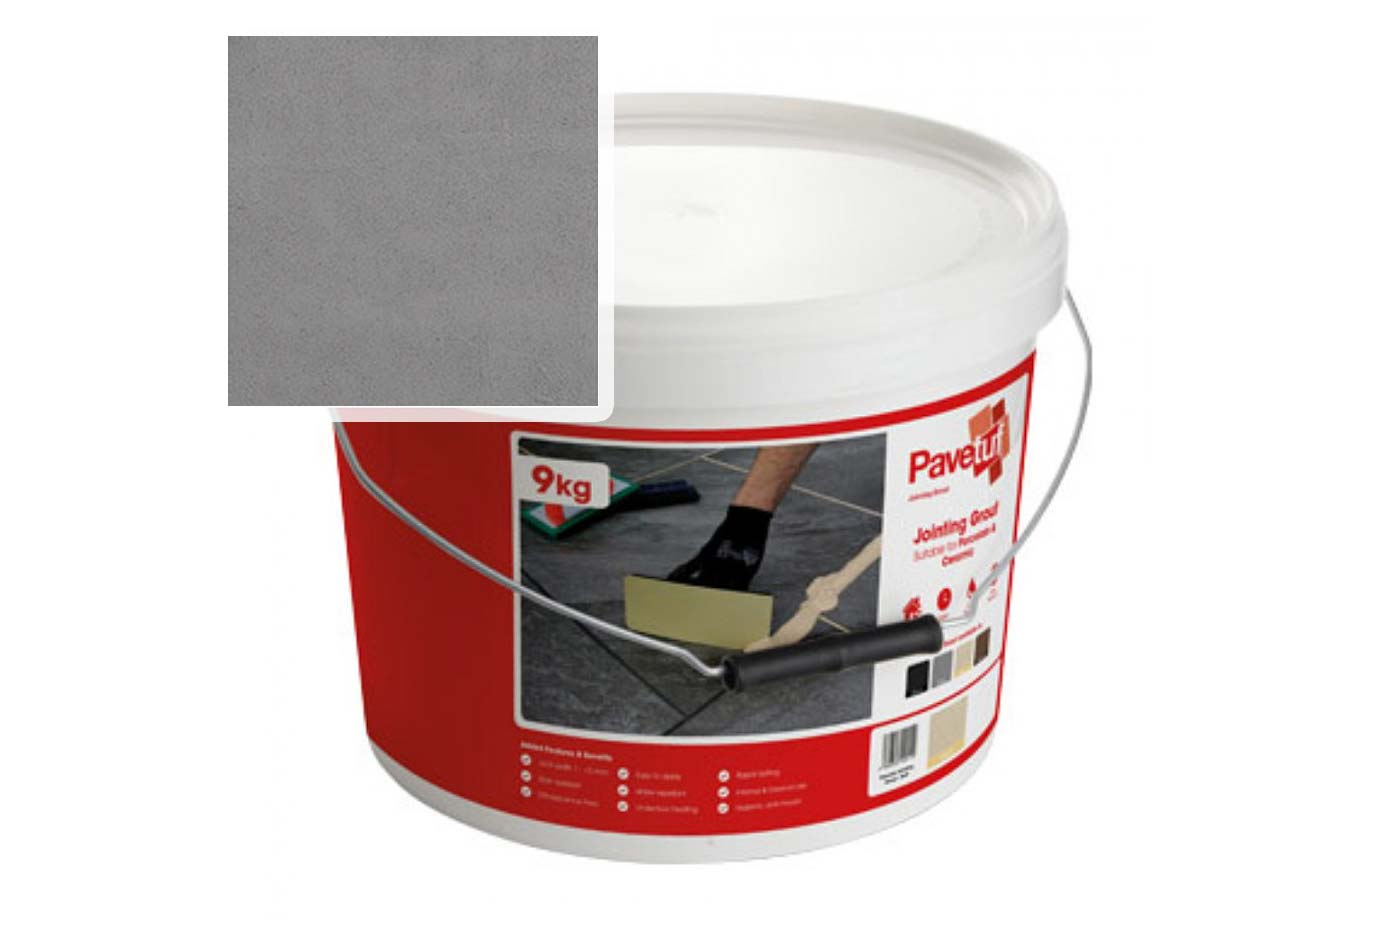 Pavetuf Jointing Grout for Porcelain Paving